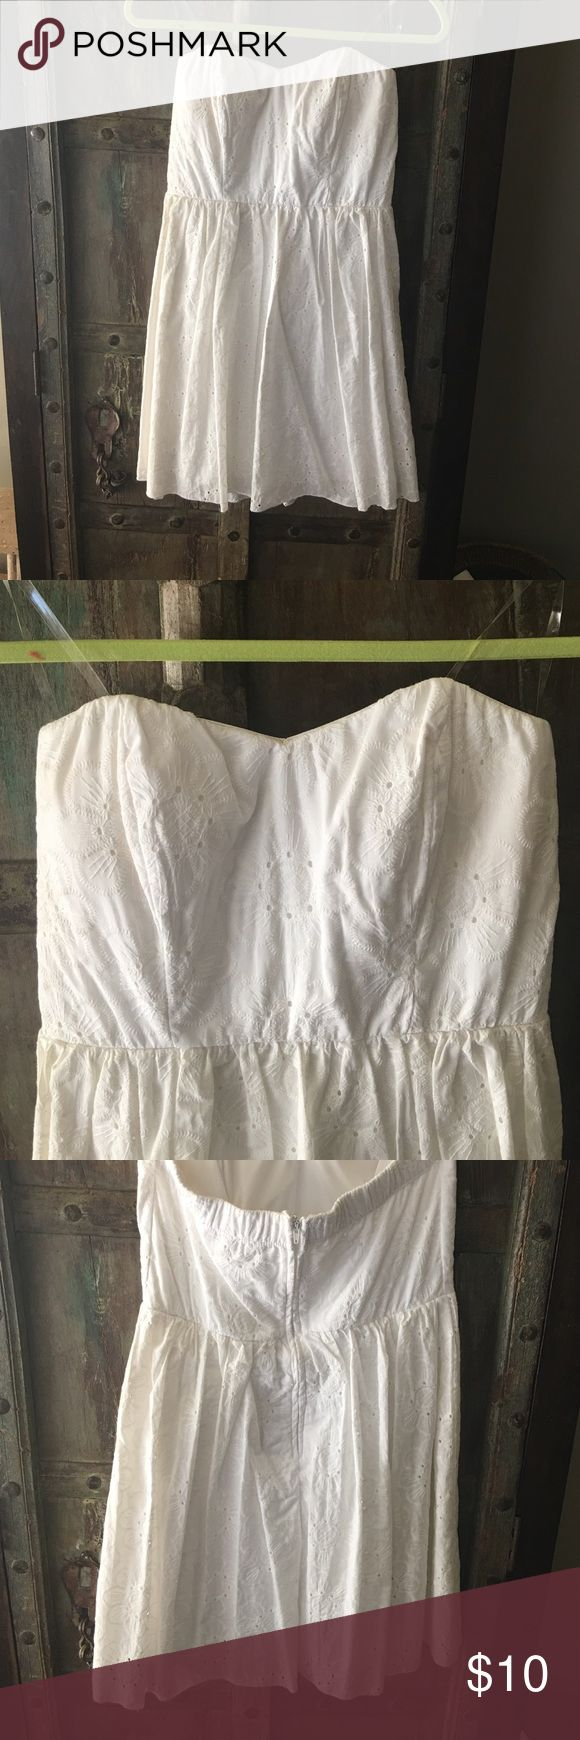 Eyelet dress Short, tube top, eyelet summer dress. Worn once. Speechless Dresses Mini